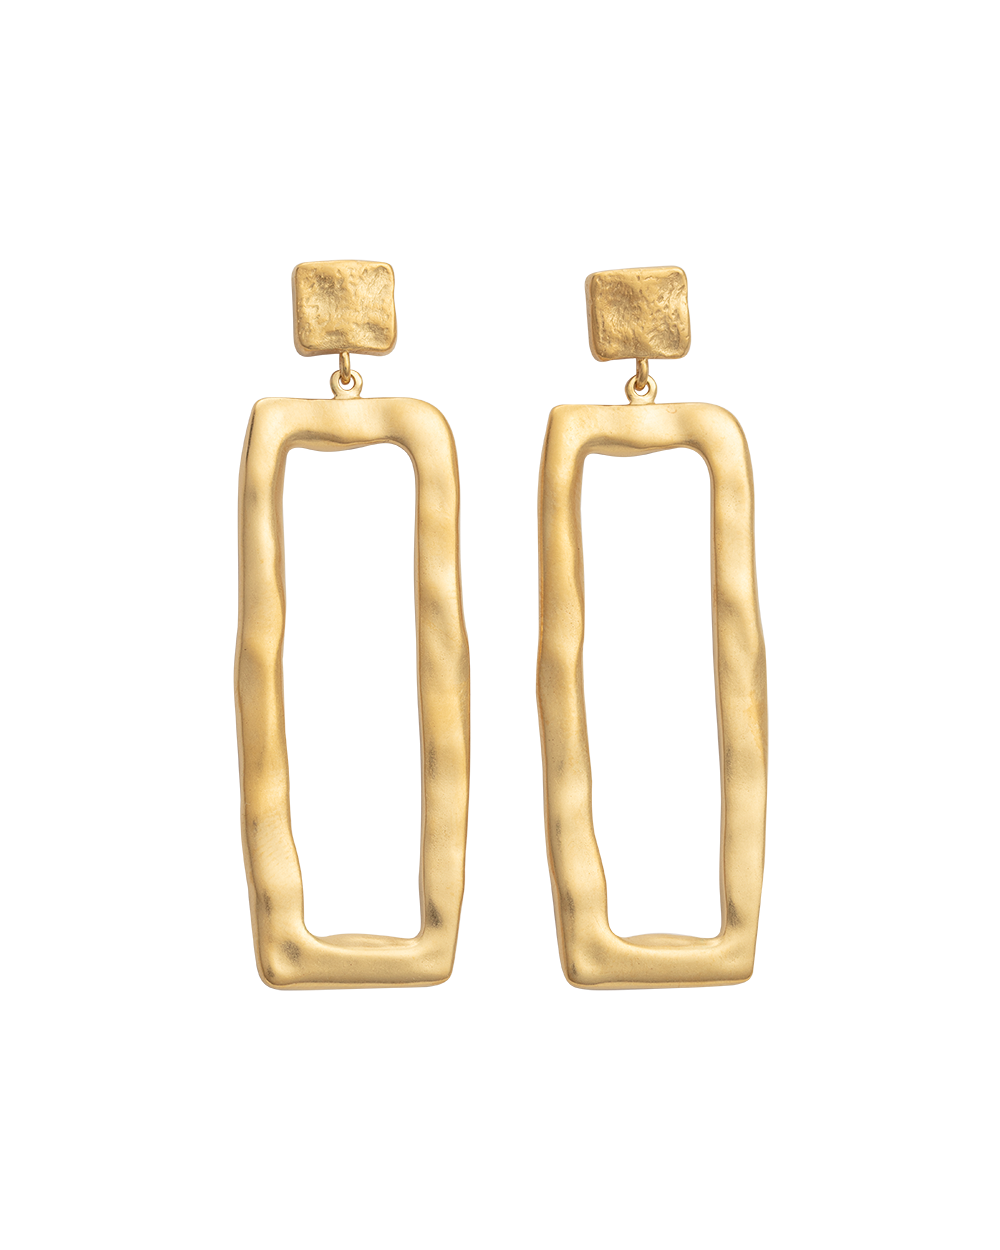 ELEMENTS EARRINGS (18K-GOLD-PLATED) - FRONT